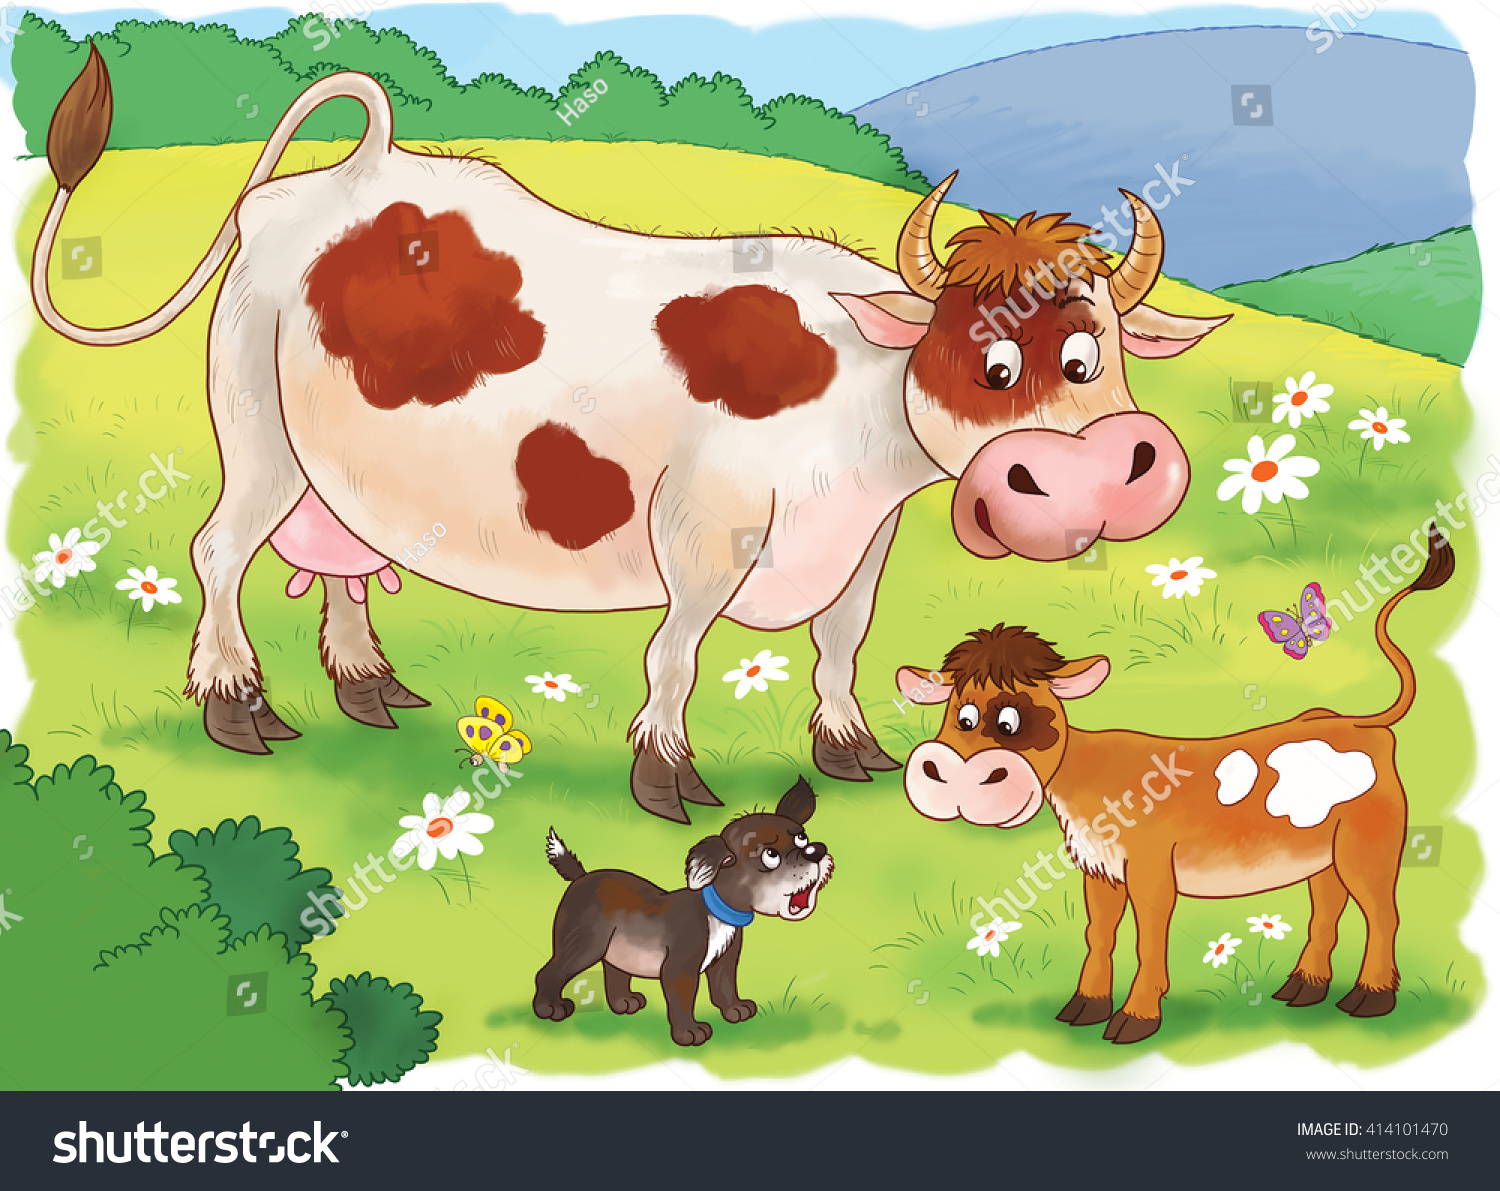 Farm Cute Mother Cow Her Calf Stock Illustration - Mother takes amazing pictures ever children animals farm